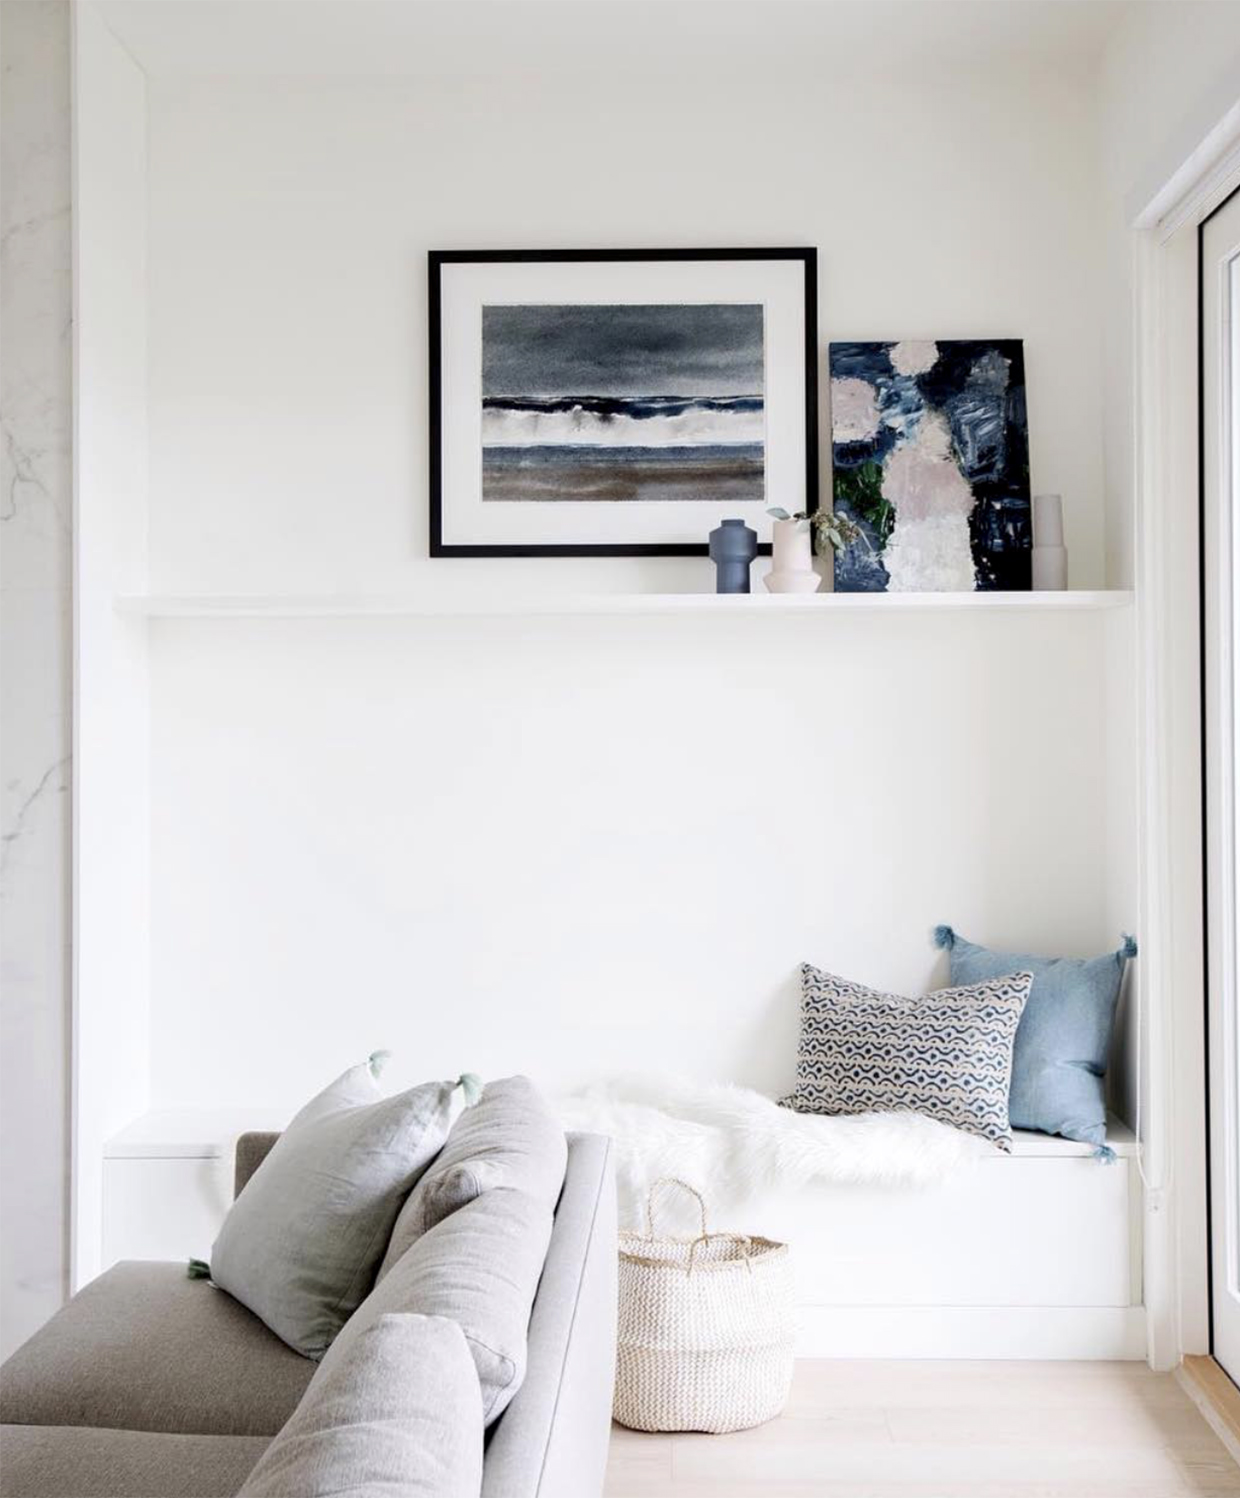 STYLE AT HOME JULY 2018 | ABSTRACT ART JULIE BRETON | PHOTO JANIS NICOLAY